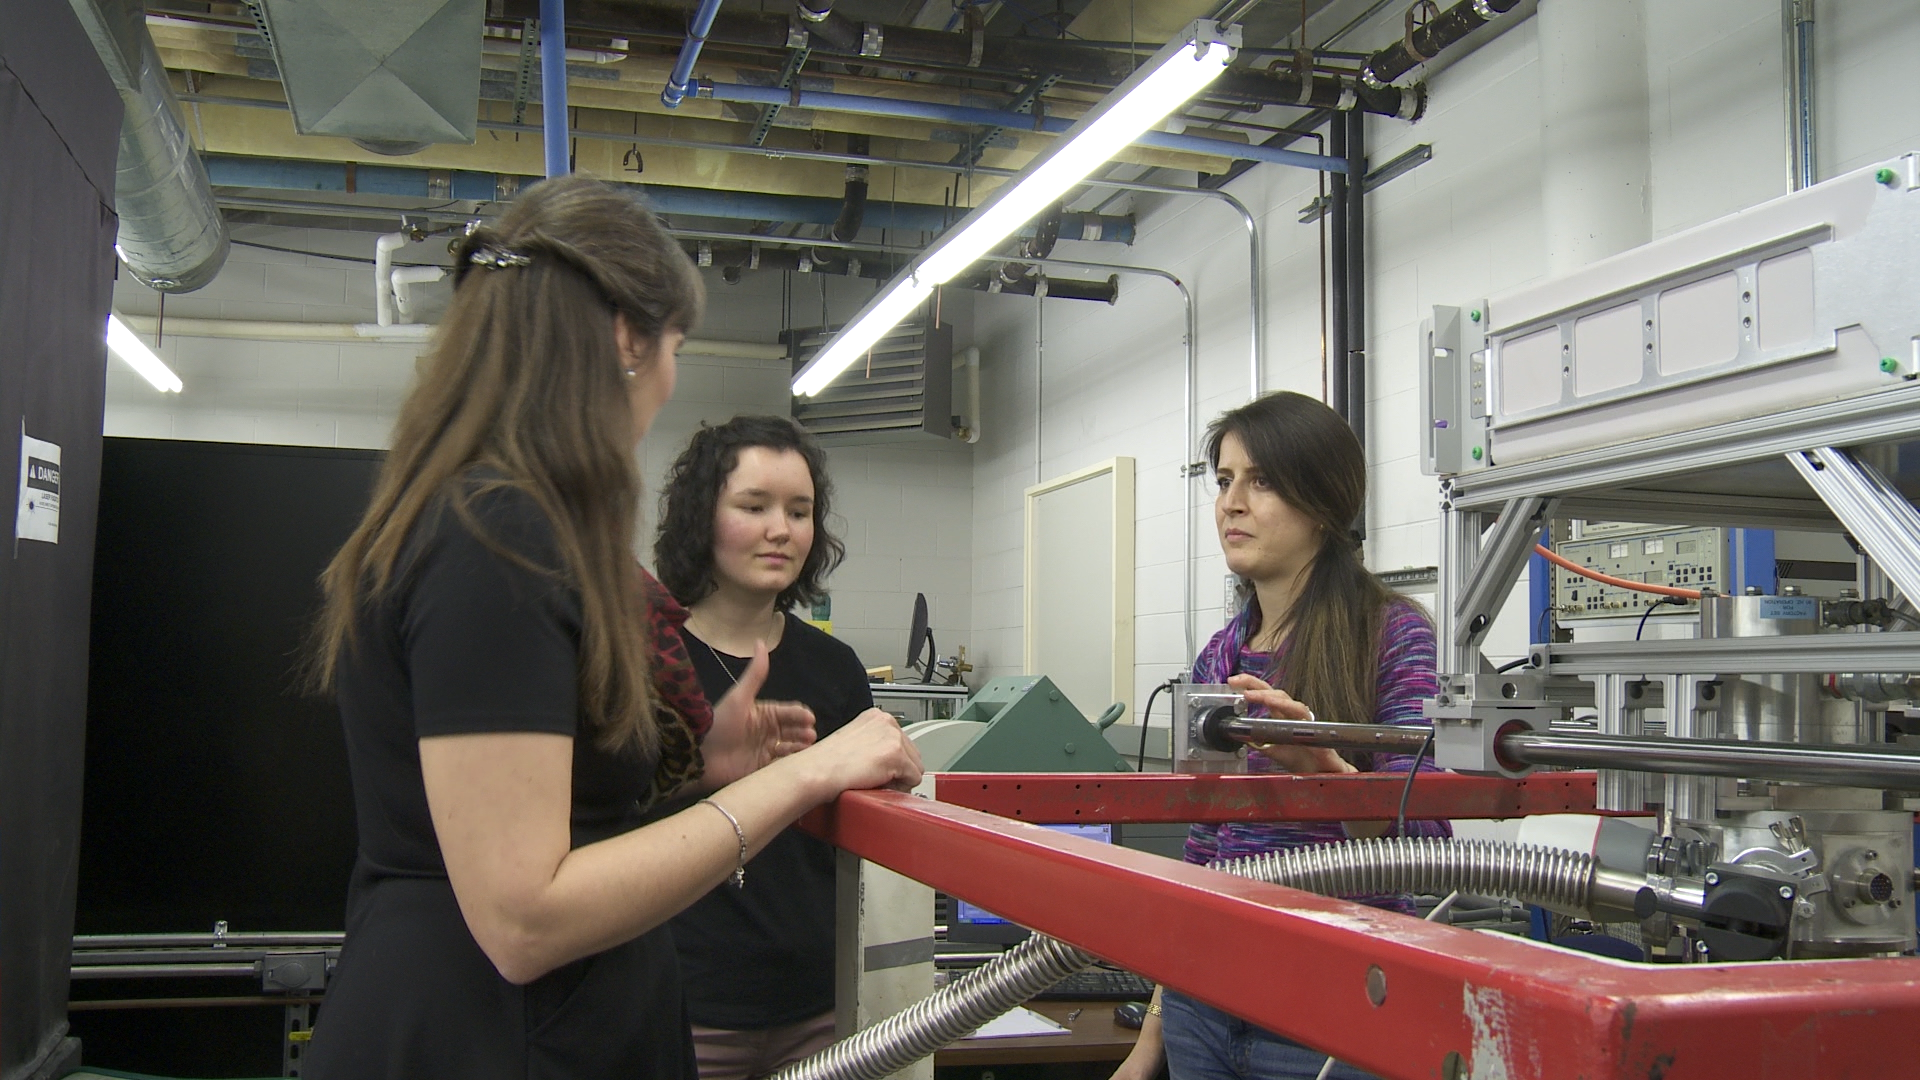 Students conferring around a machine